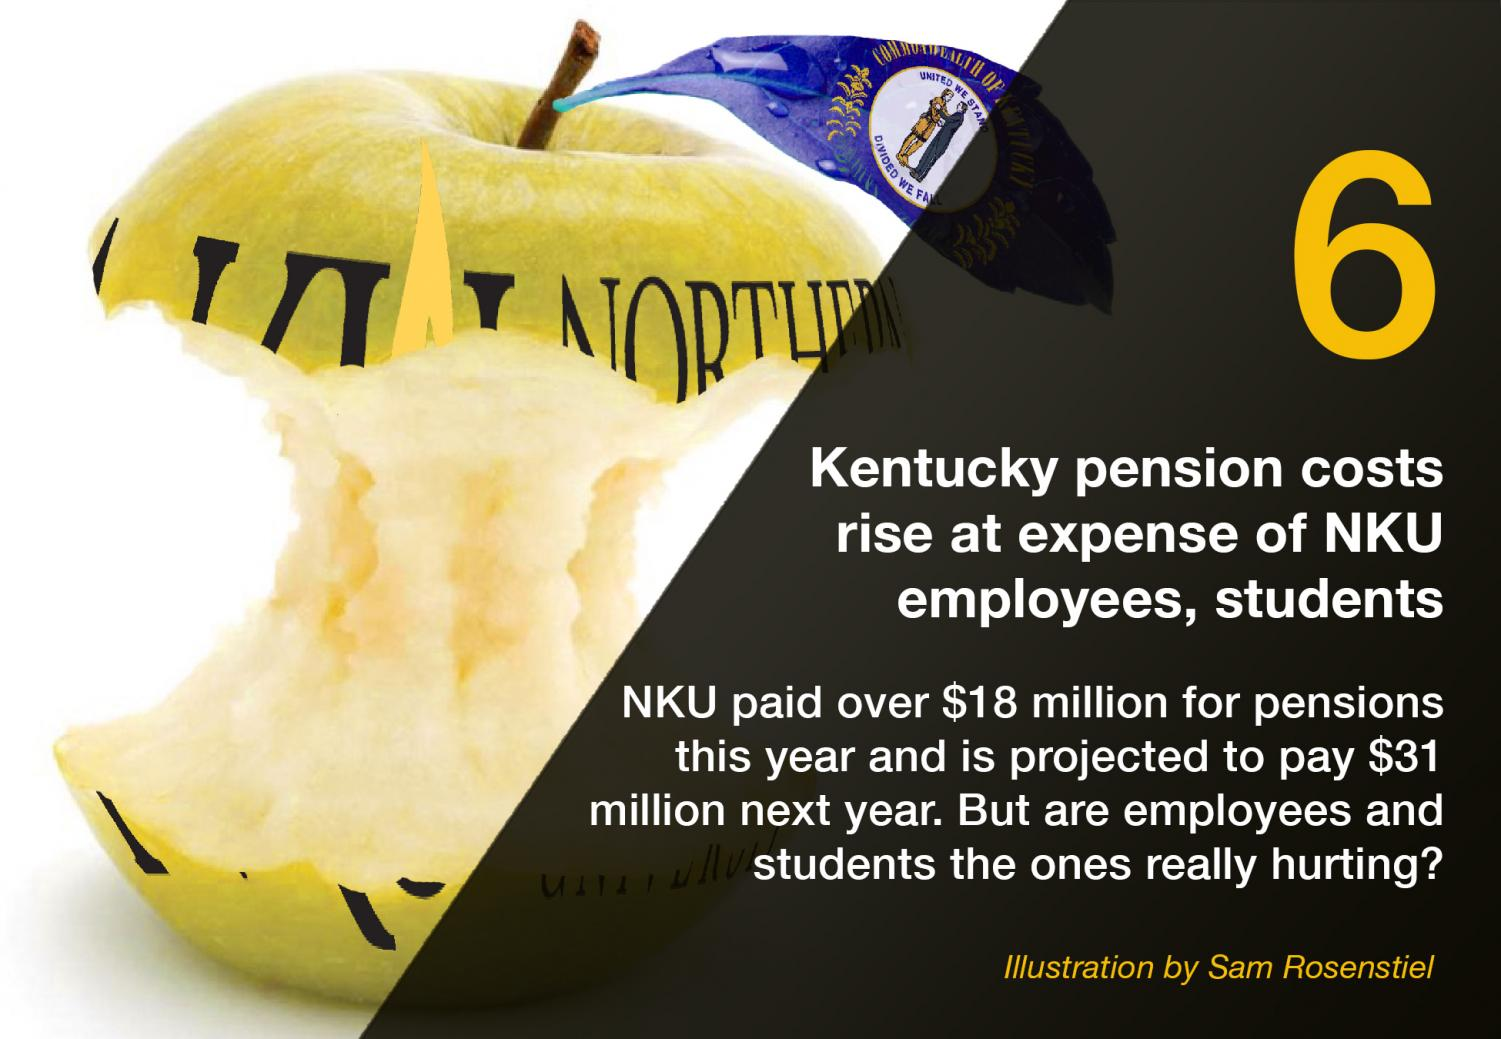 NKU+paid+over+%2418+million+for+pensions+this+year+and+is+projected+to+pay+%2431+million+next+year.+But+are+employees+and+students+the+ones+really+hurting%3F